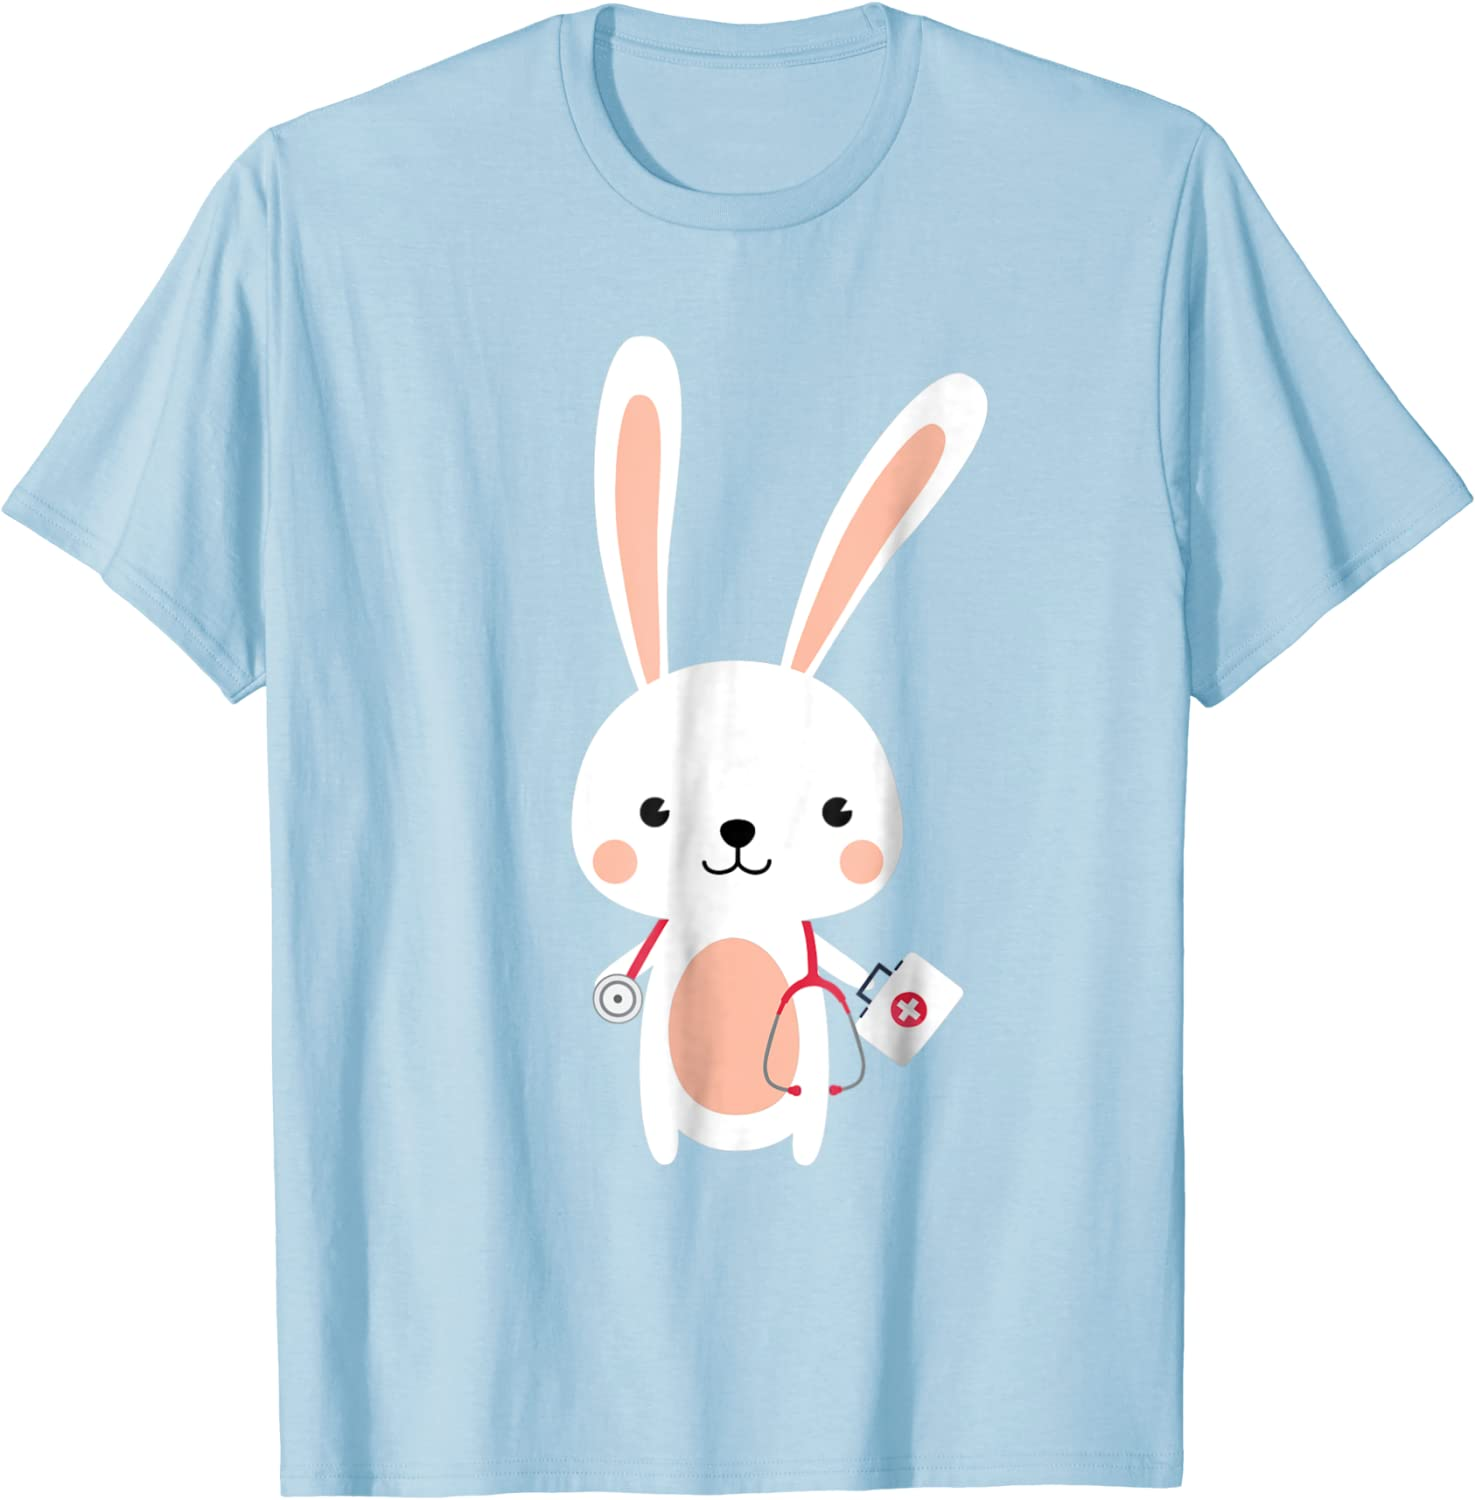 Nurse Tshirts for Women Womens V-Neck Easter Cute Bunny Printed Working T-Shirt Workwear Scrub/_Tops with 2 Pockets